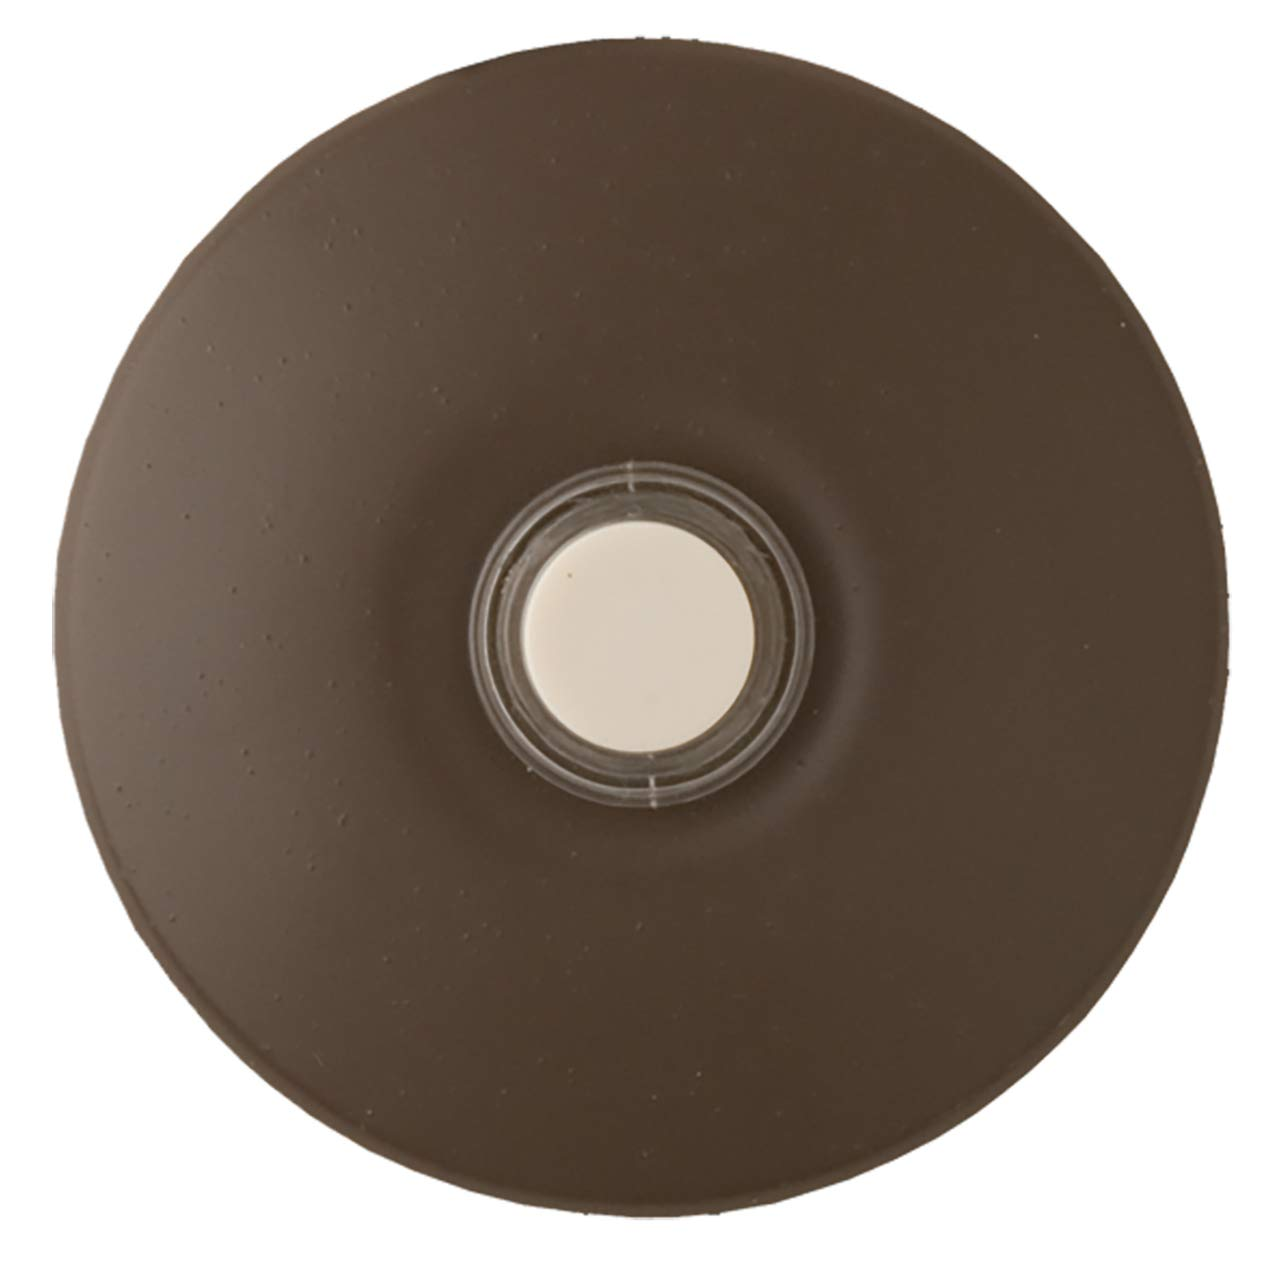 NICOR STUCCOBTNARCHBZ Lighted Stucco Doorbell Button in Architectural Bronze